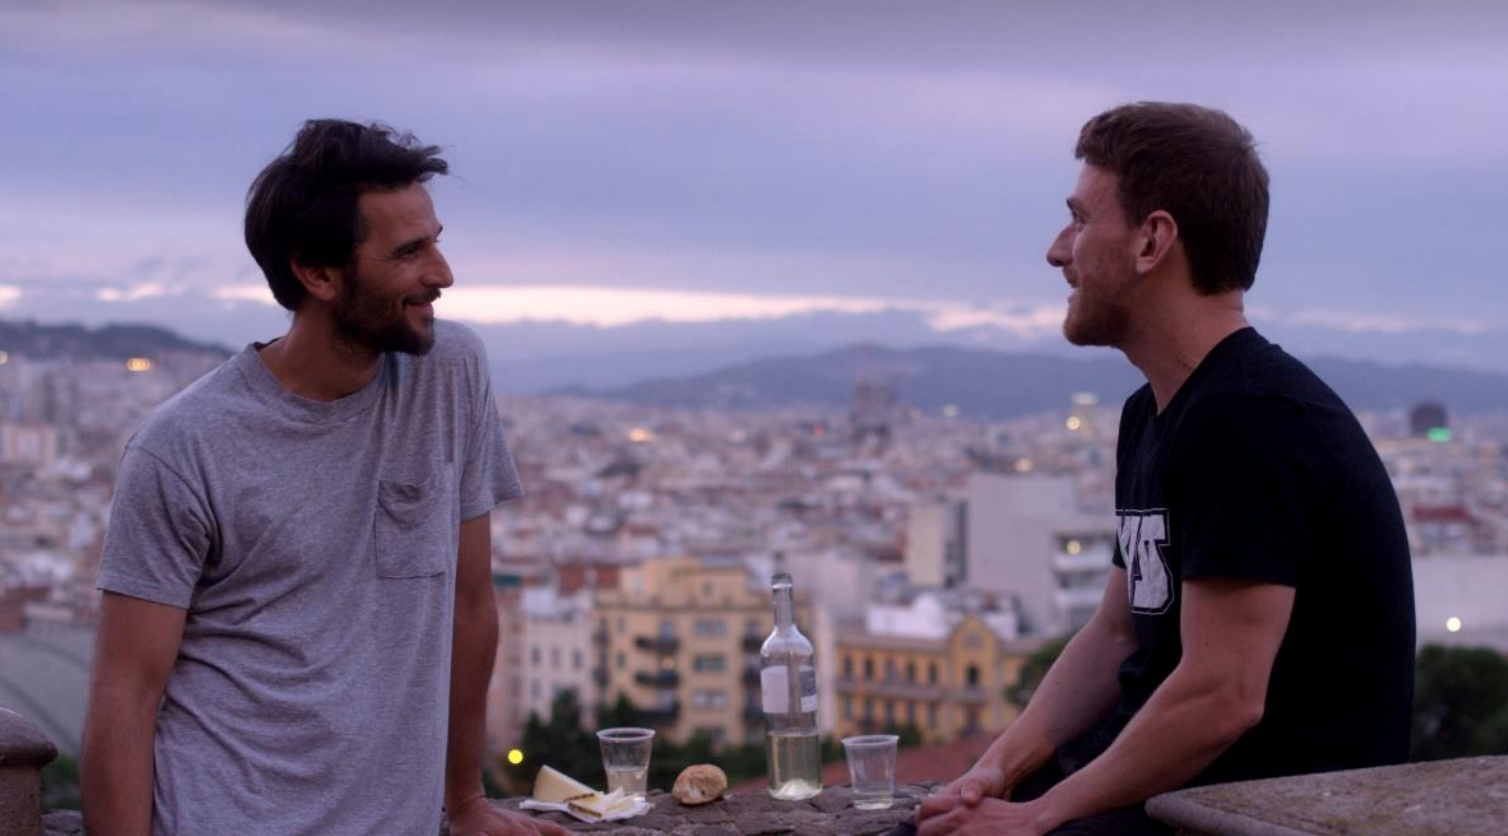 'End of the Century' Review: Love Is Ephemeral in the Best Gay Film of the Year